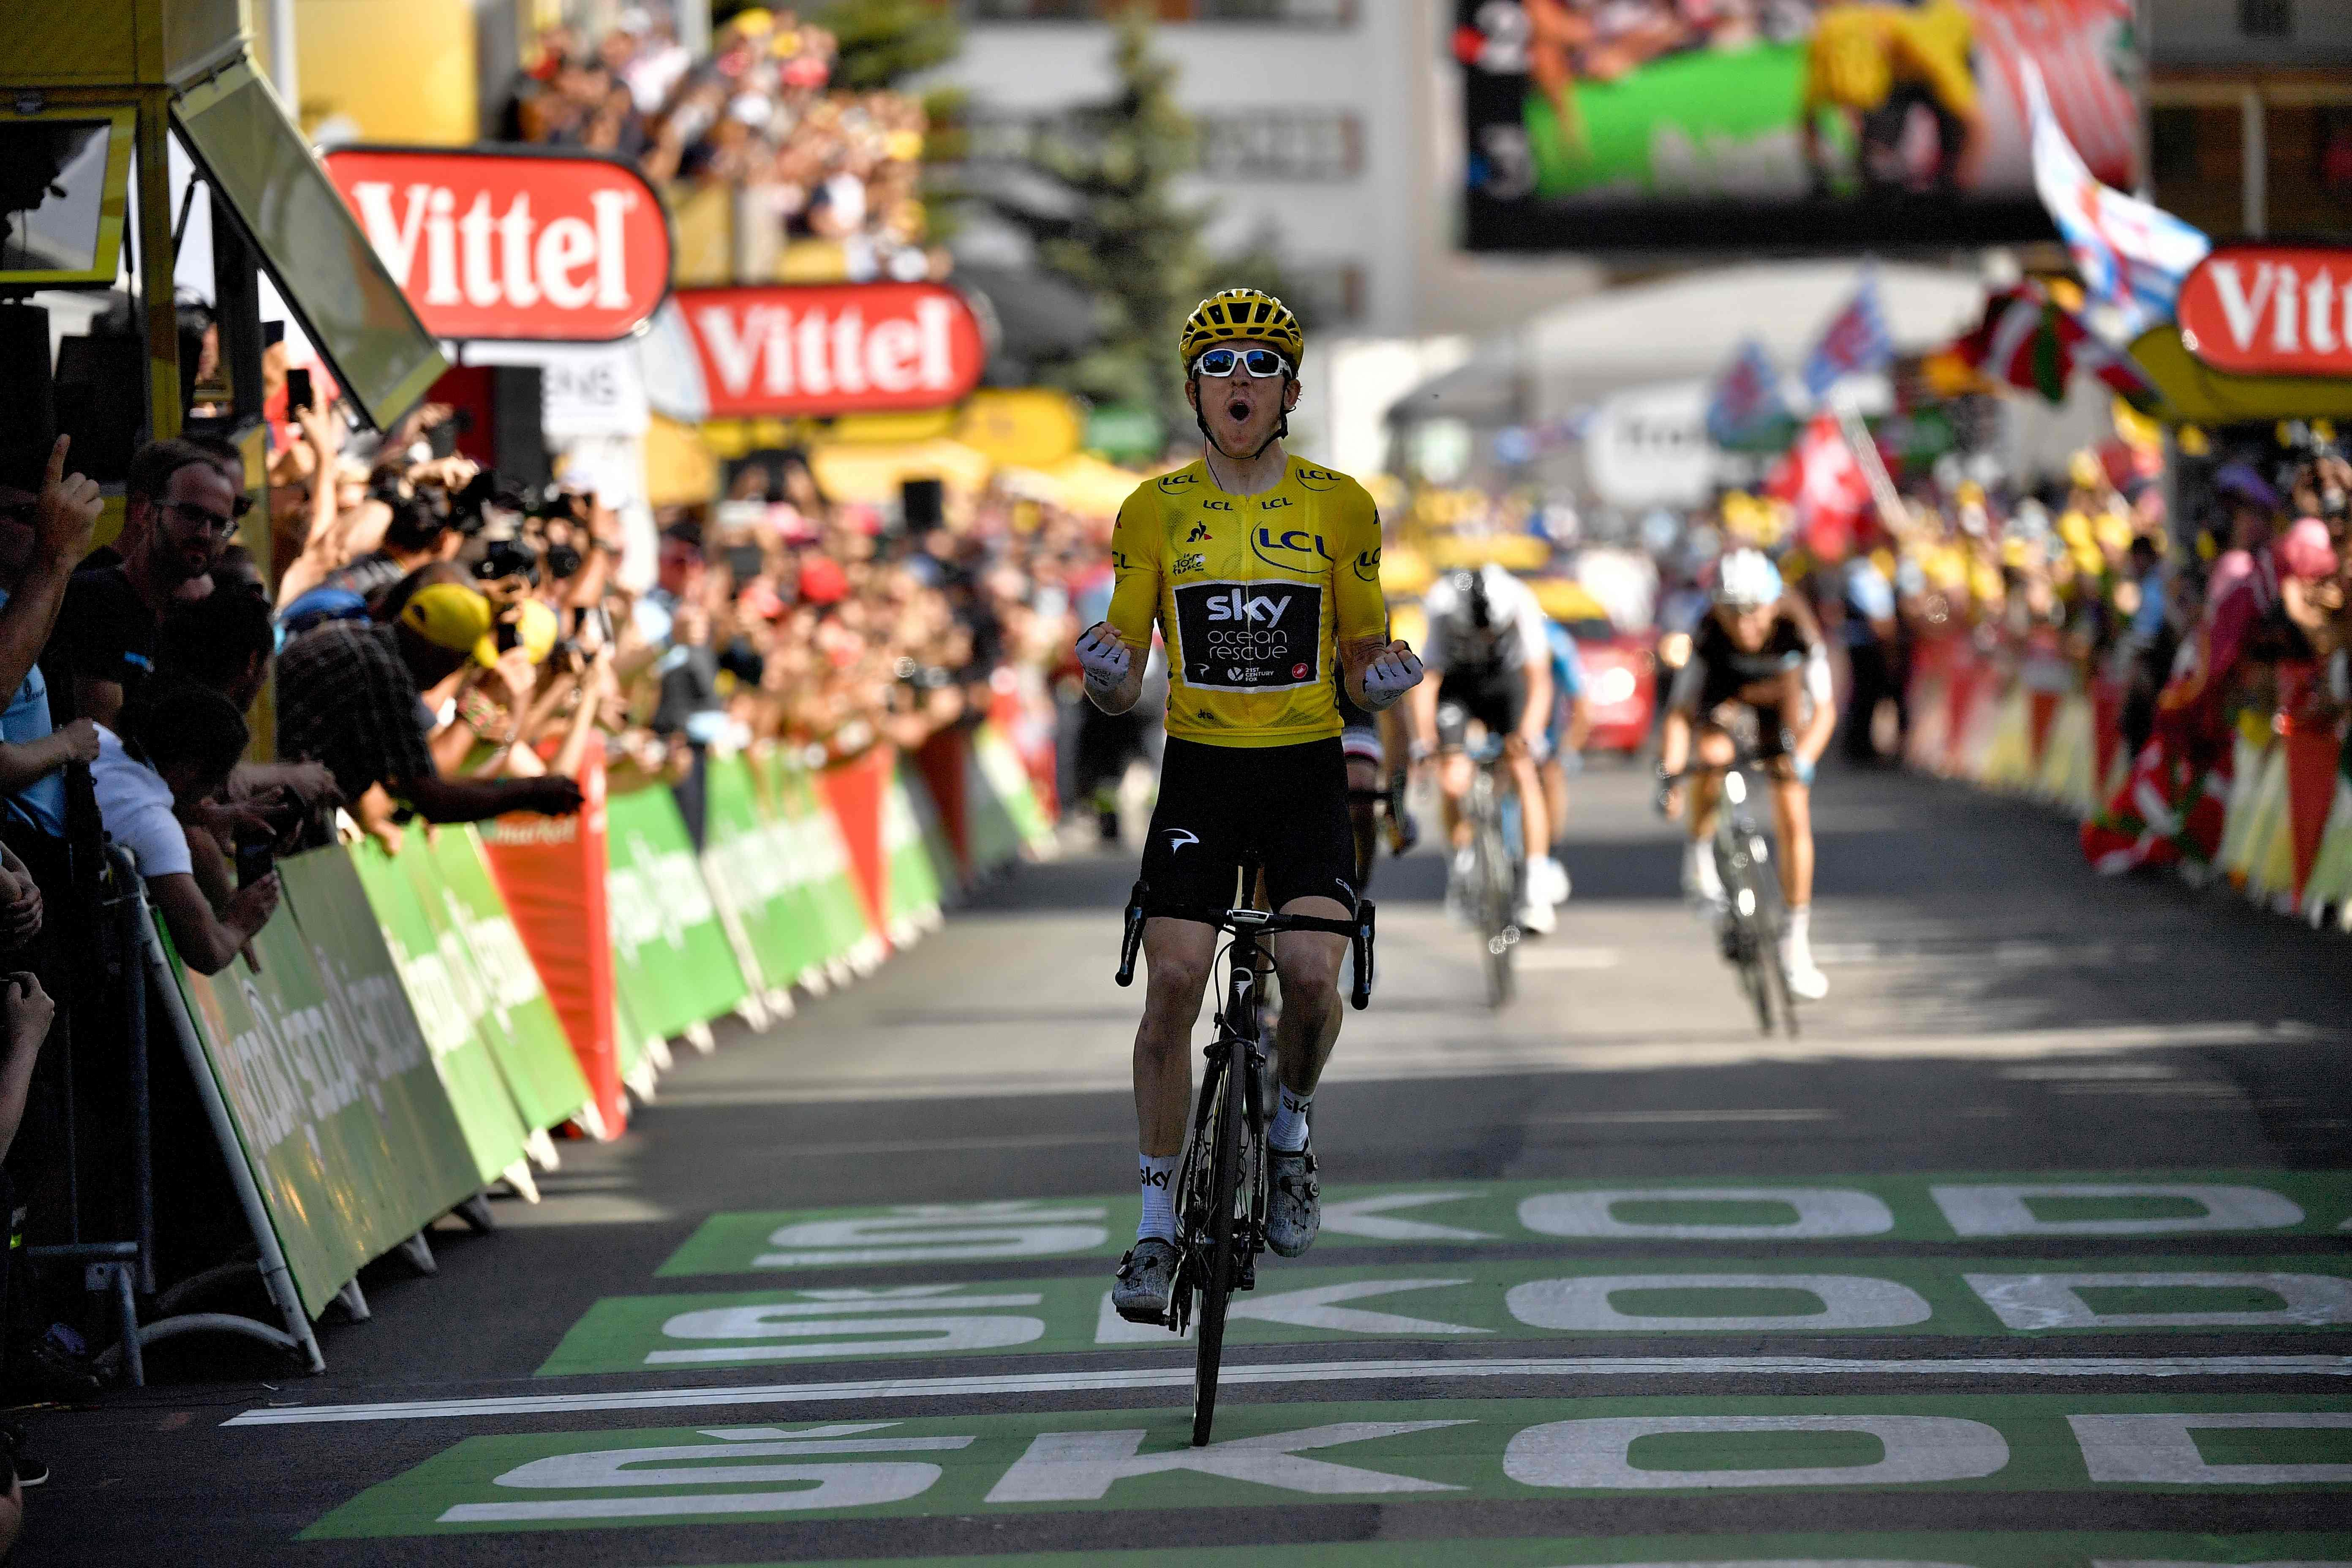 The Sky ace outsprinted team-mate Chris Froome on the day